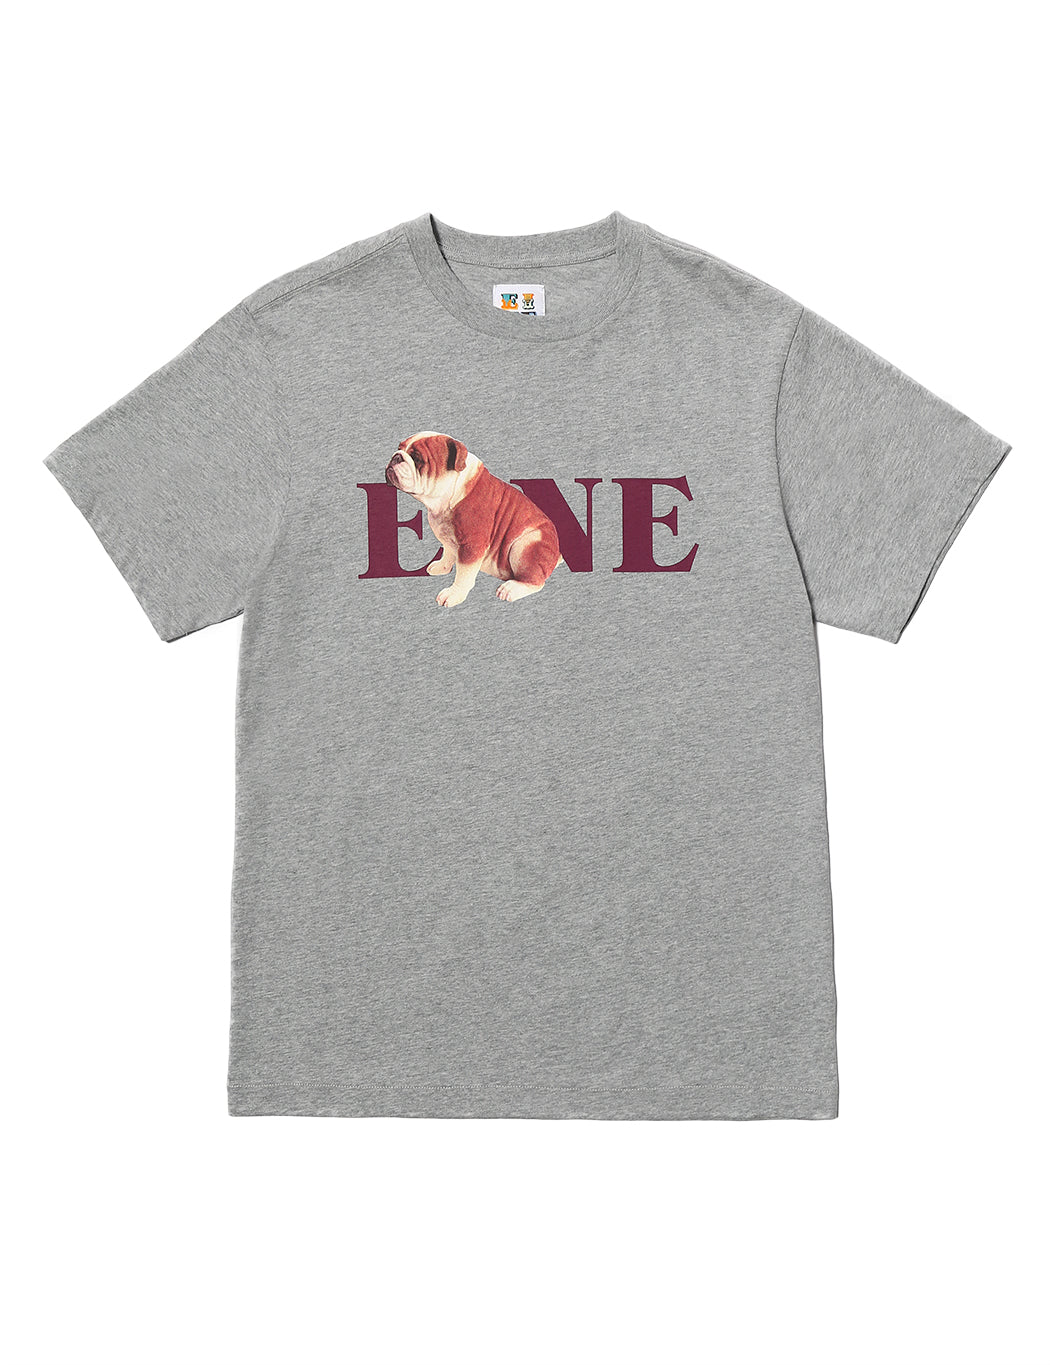 EINE Bulldog S/S T-Shirt - Heather Grey - Eine London by Ben Eine